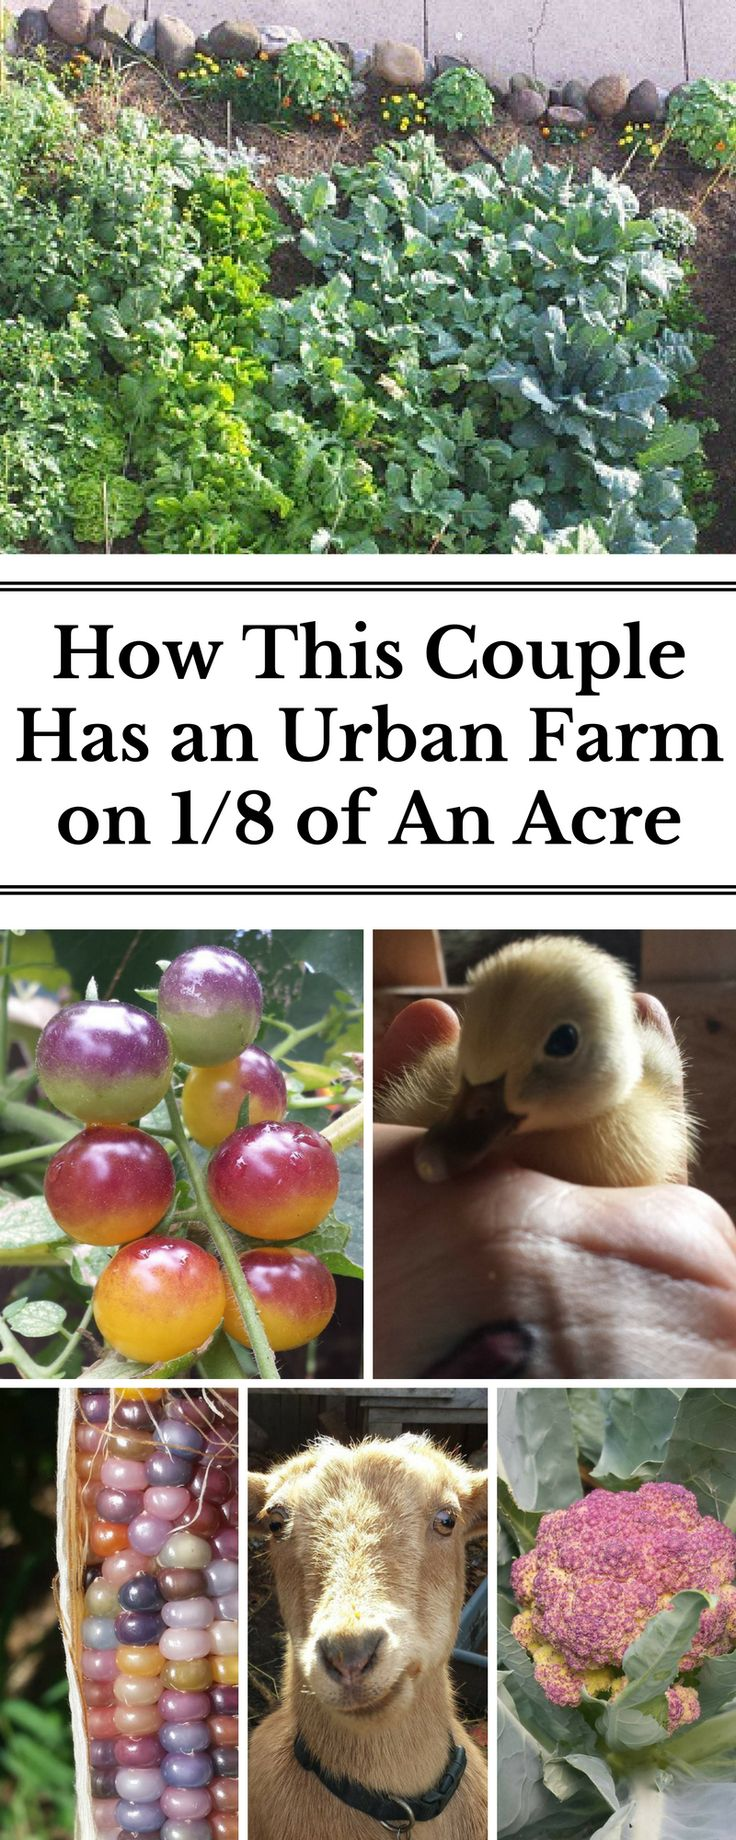 Get tips for growing your own food and raising animals in a small space, including how to utilize your front yard. Husband and wife team, Amie and Josh, garden and raise chickens, ducks, rabbits, goats and two dogs on ⅛ acre in an urban setting while both working full time.